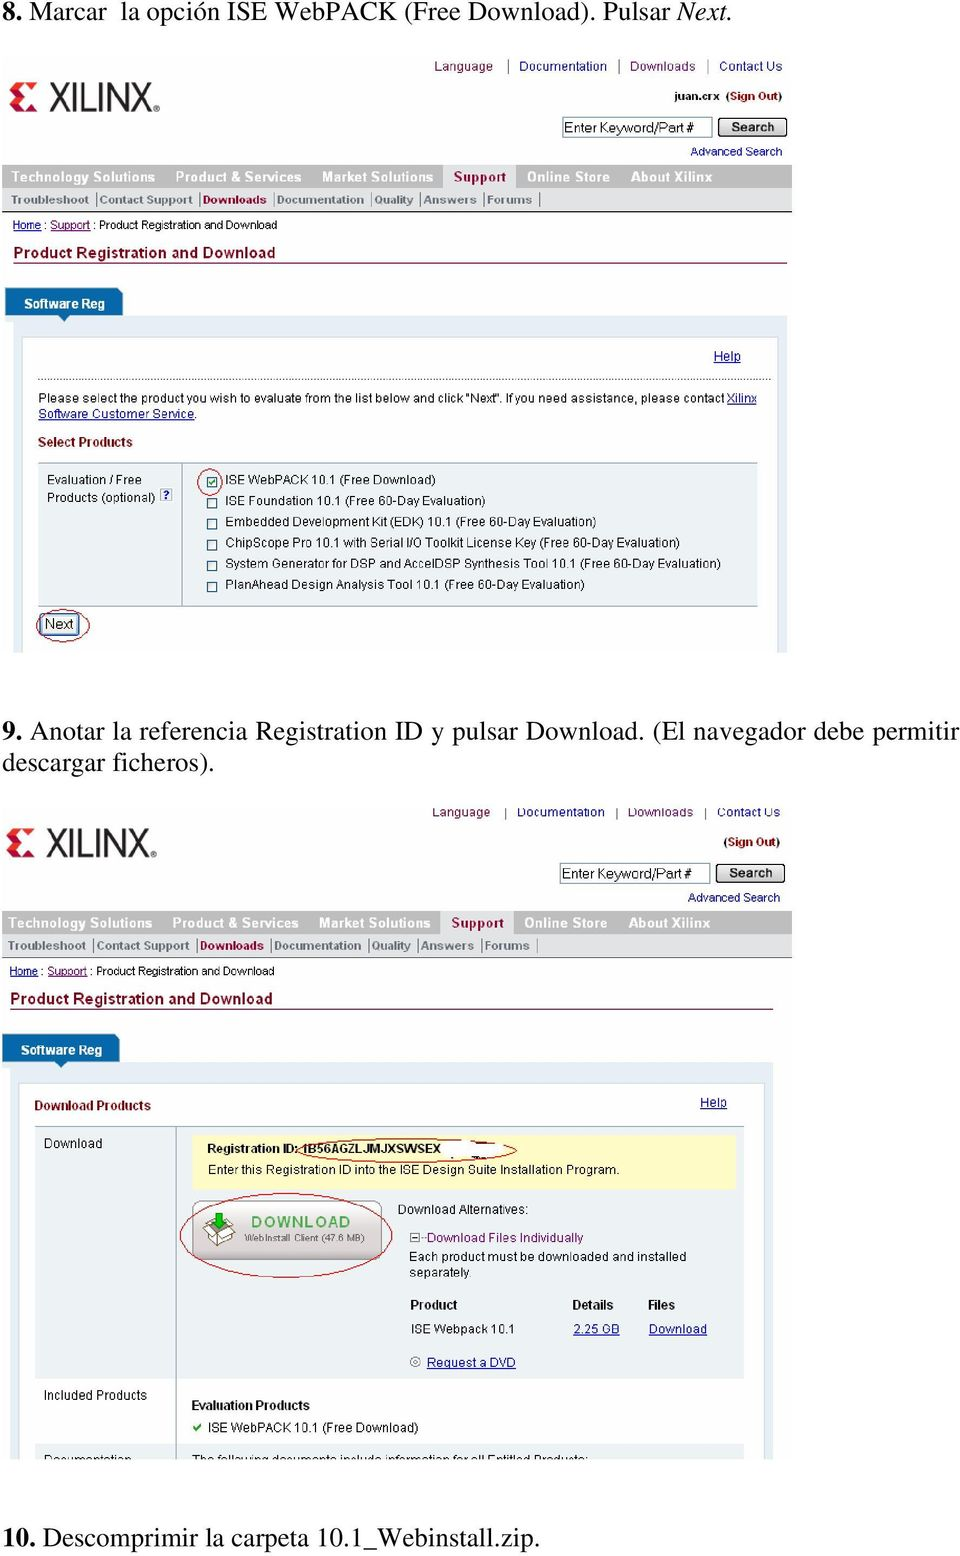 Anotar la referencia Registration ID y pulsar Download.